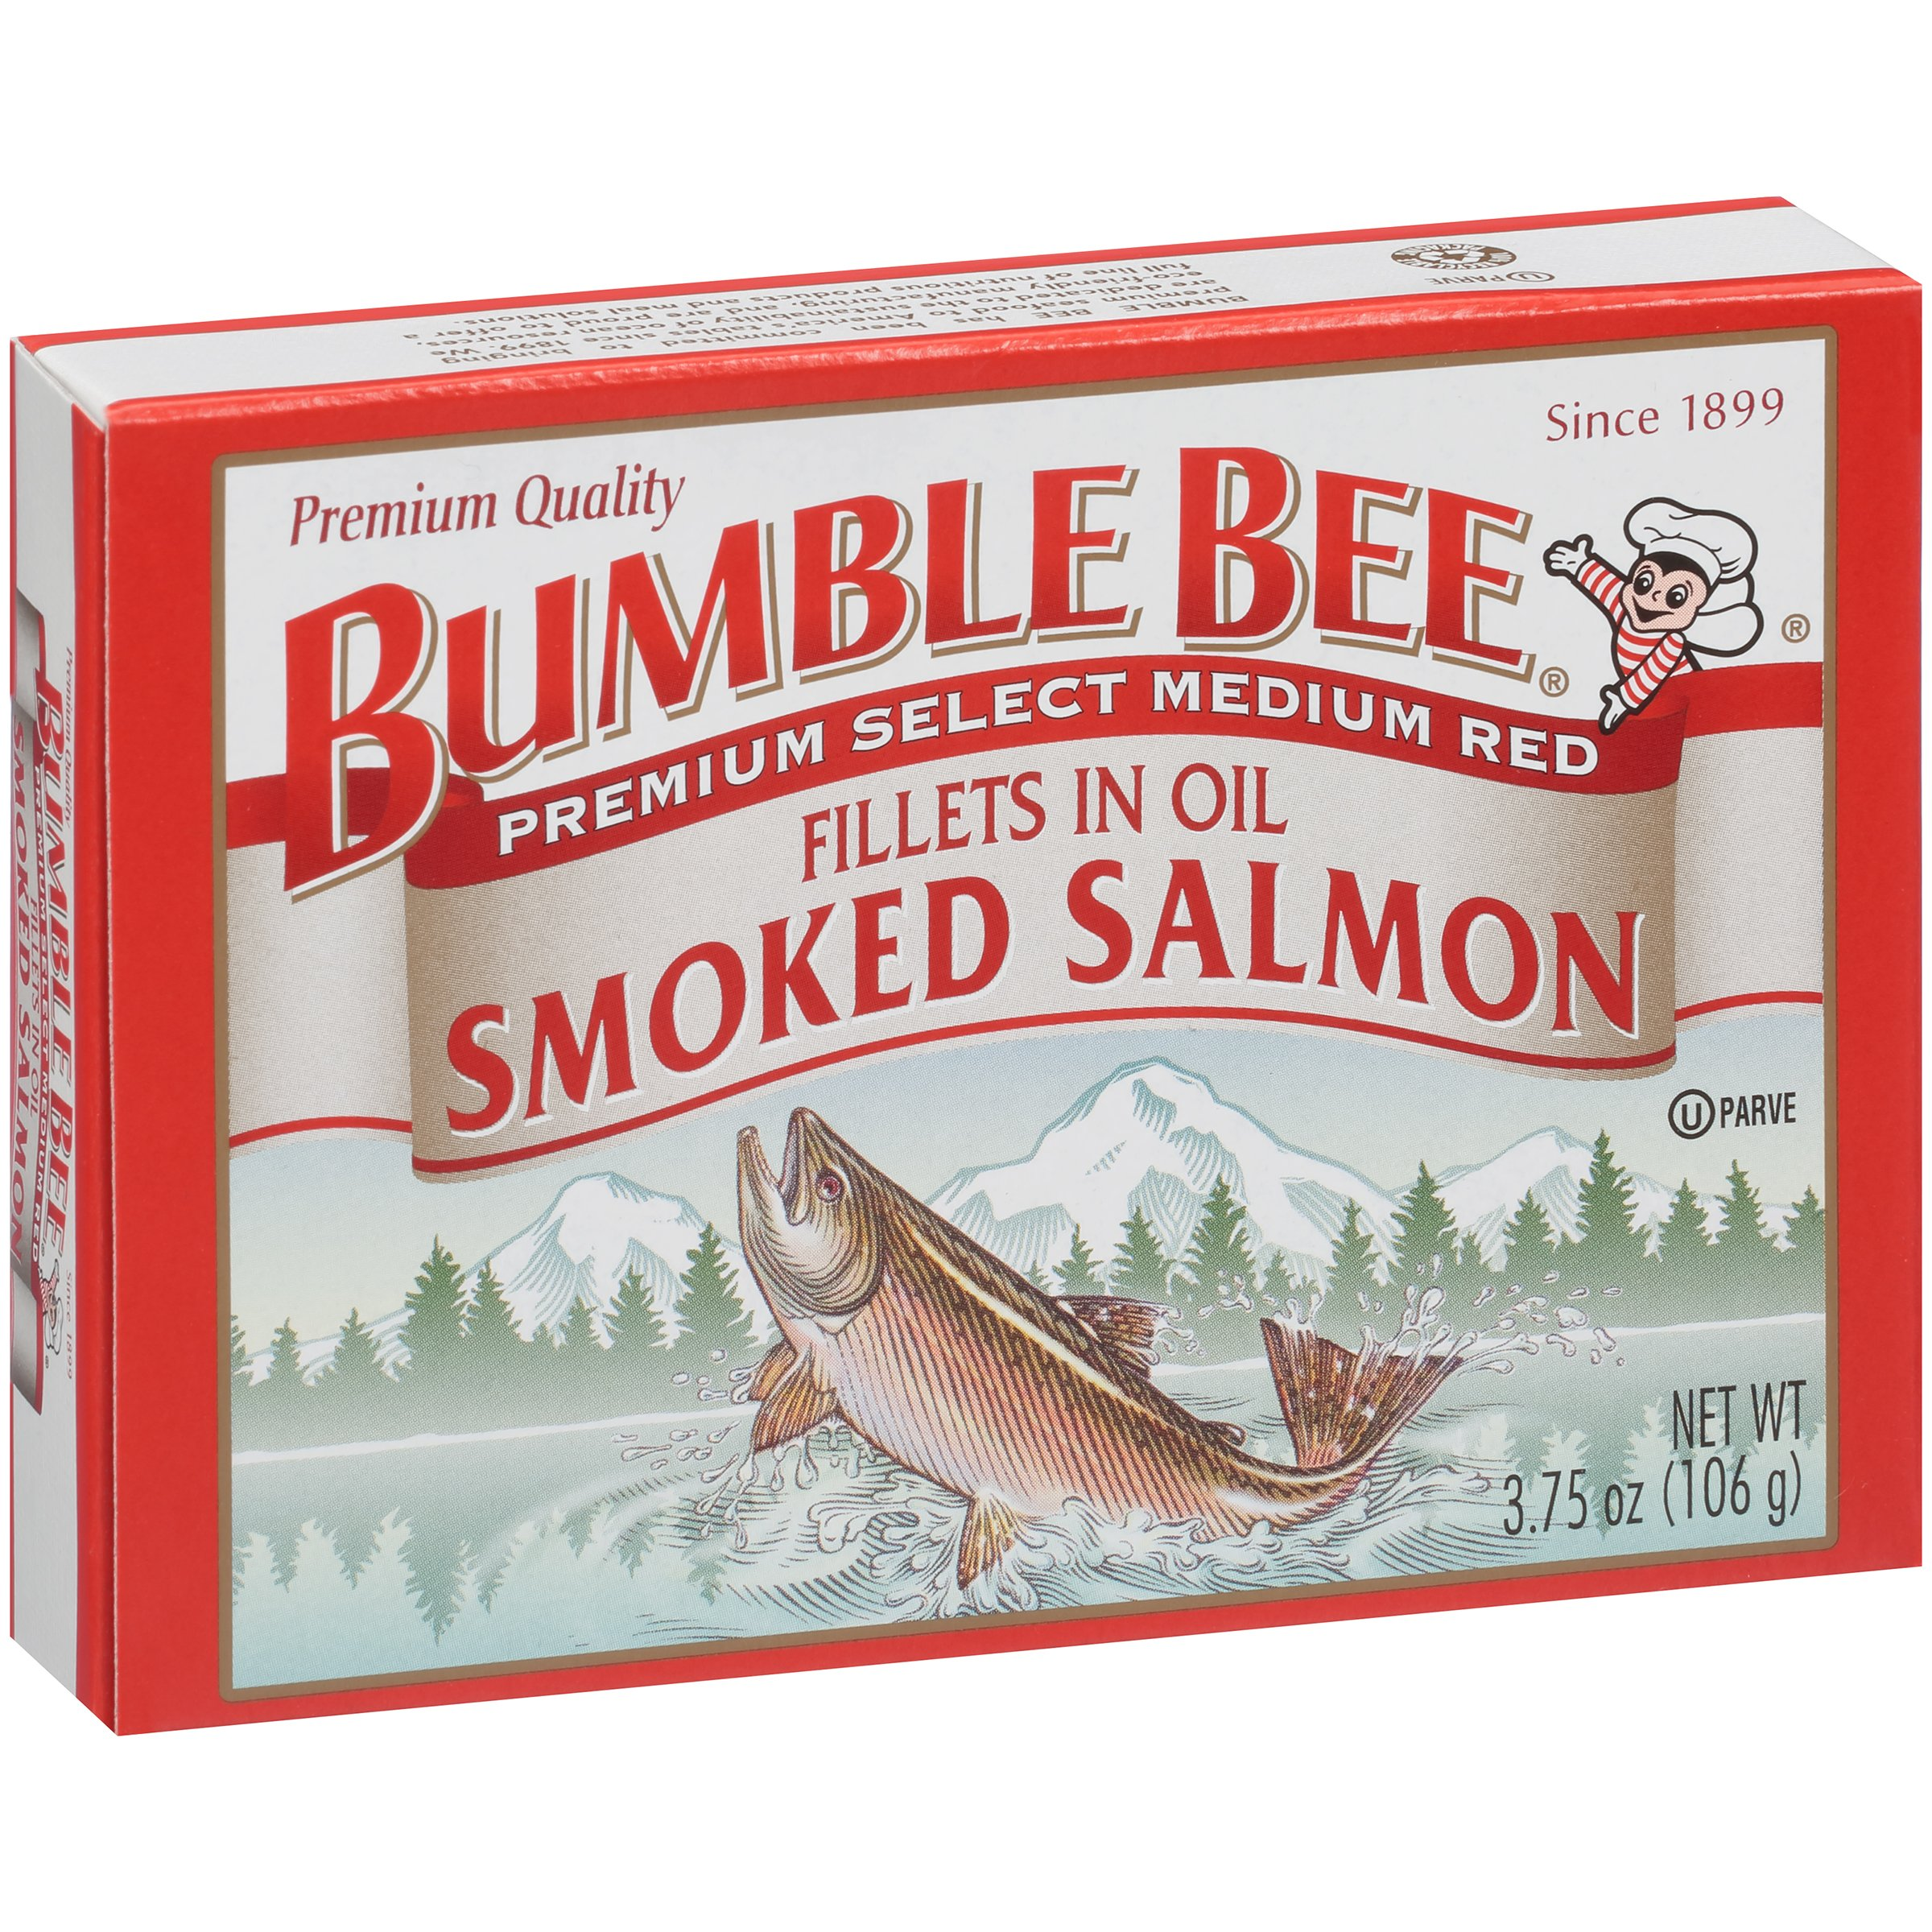 Bumble Bee Smoked Salmon Fillets In Oil, 3.75 oz by Bumble Bee Seafoods